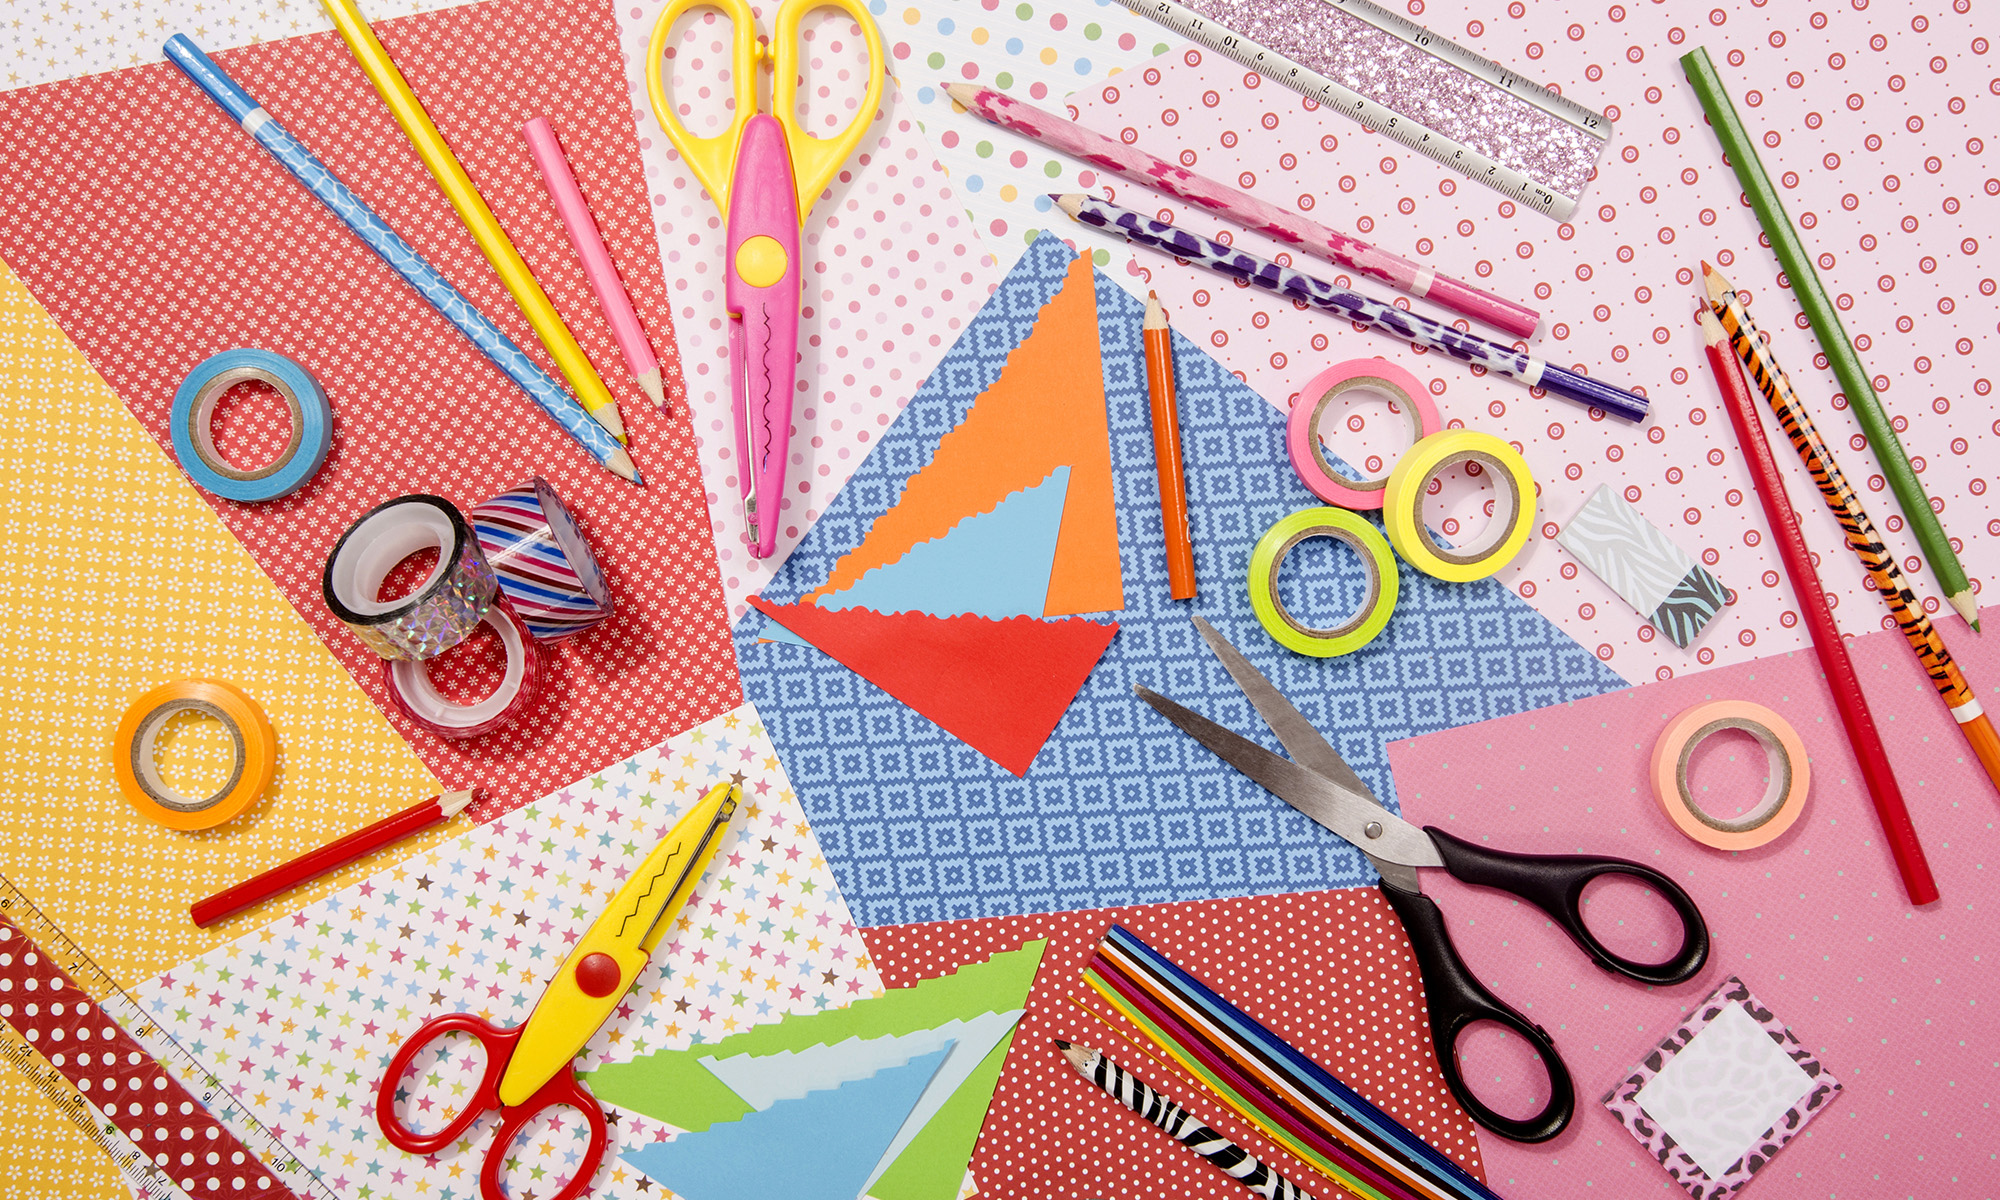 Scrapbooking innovation and creative tips